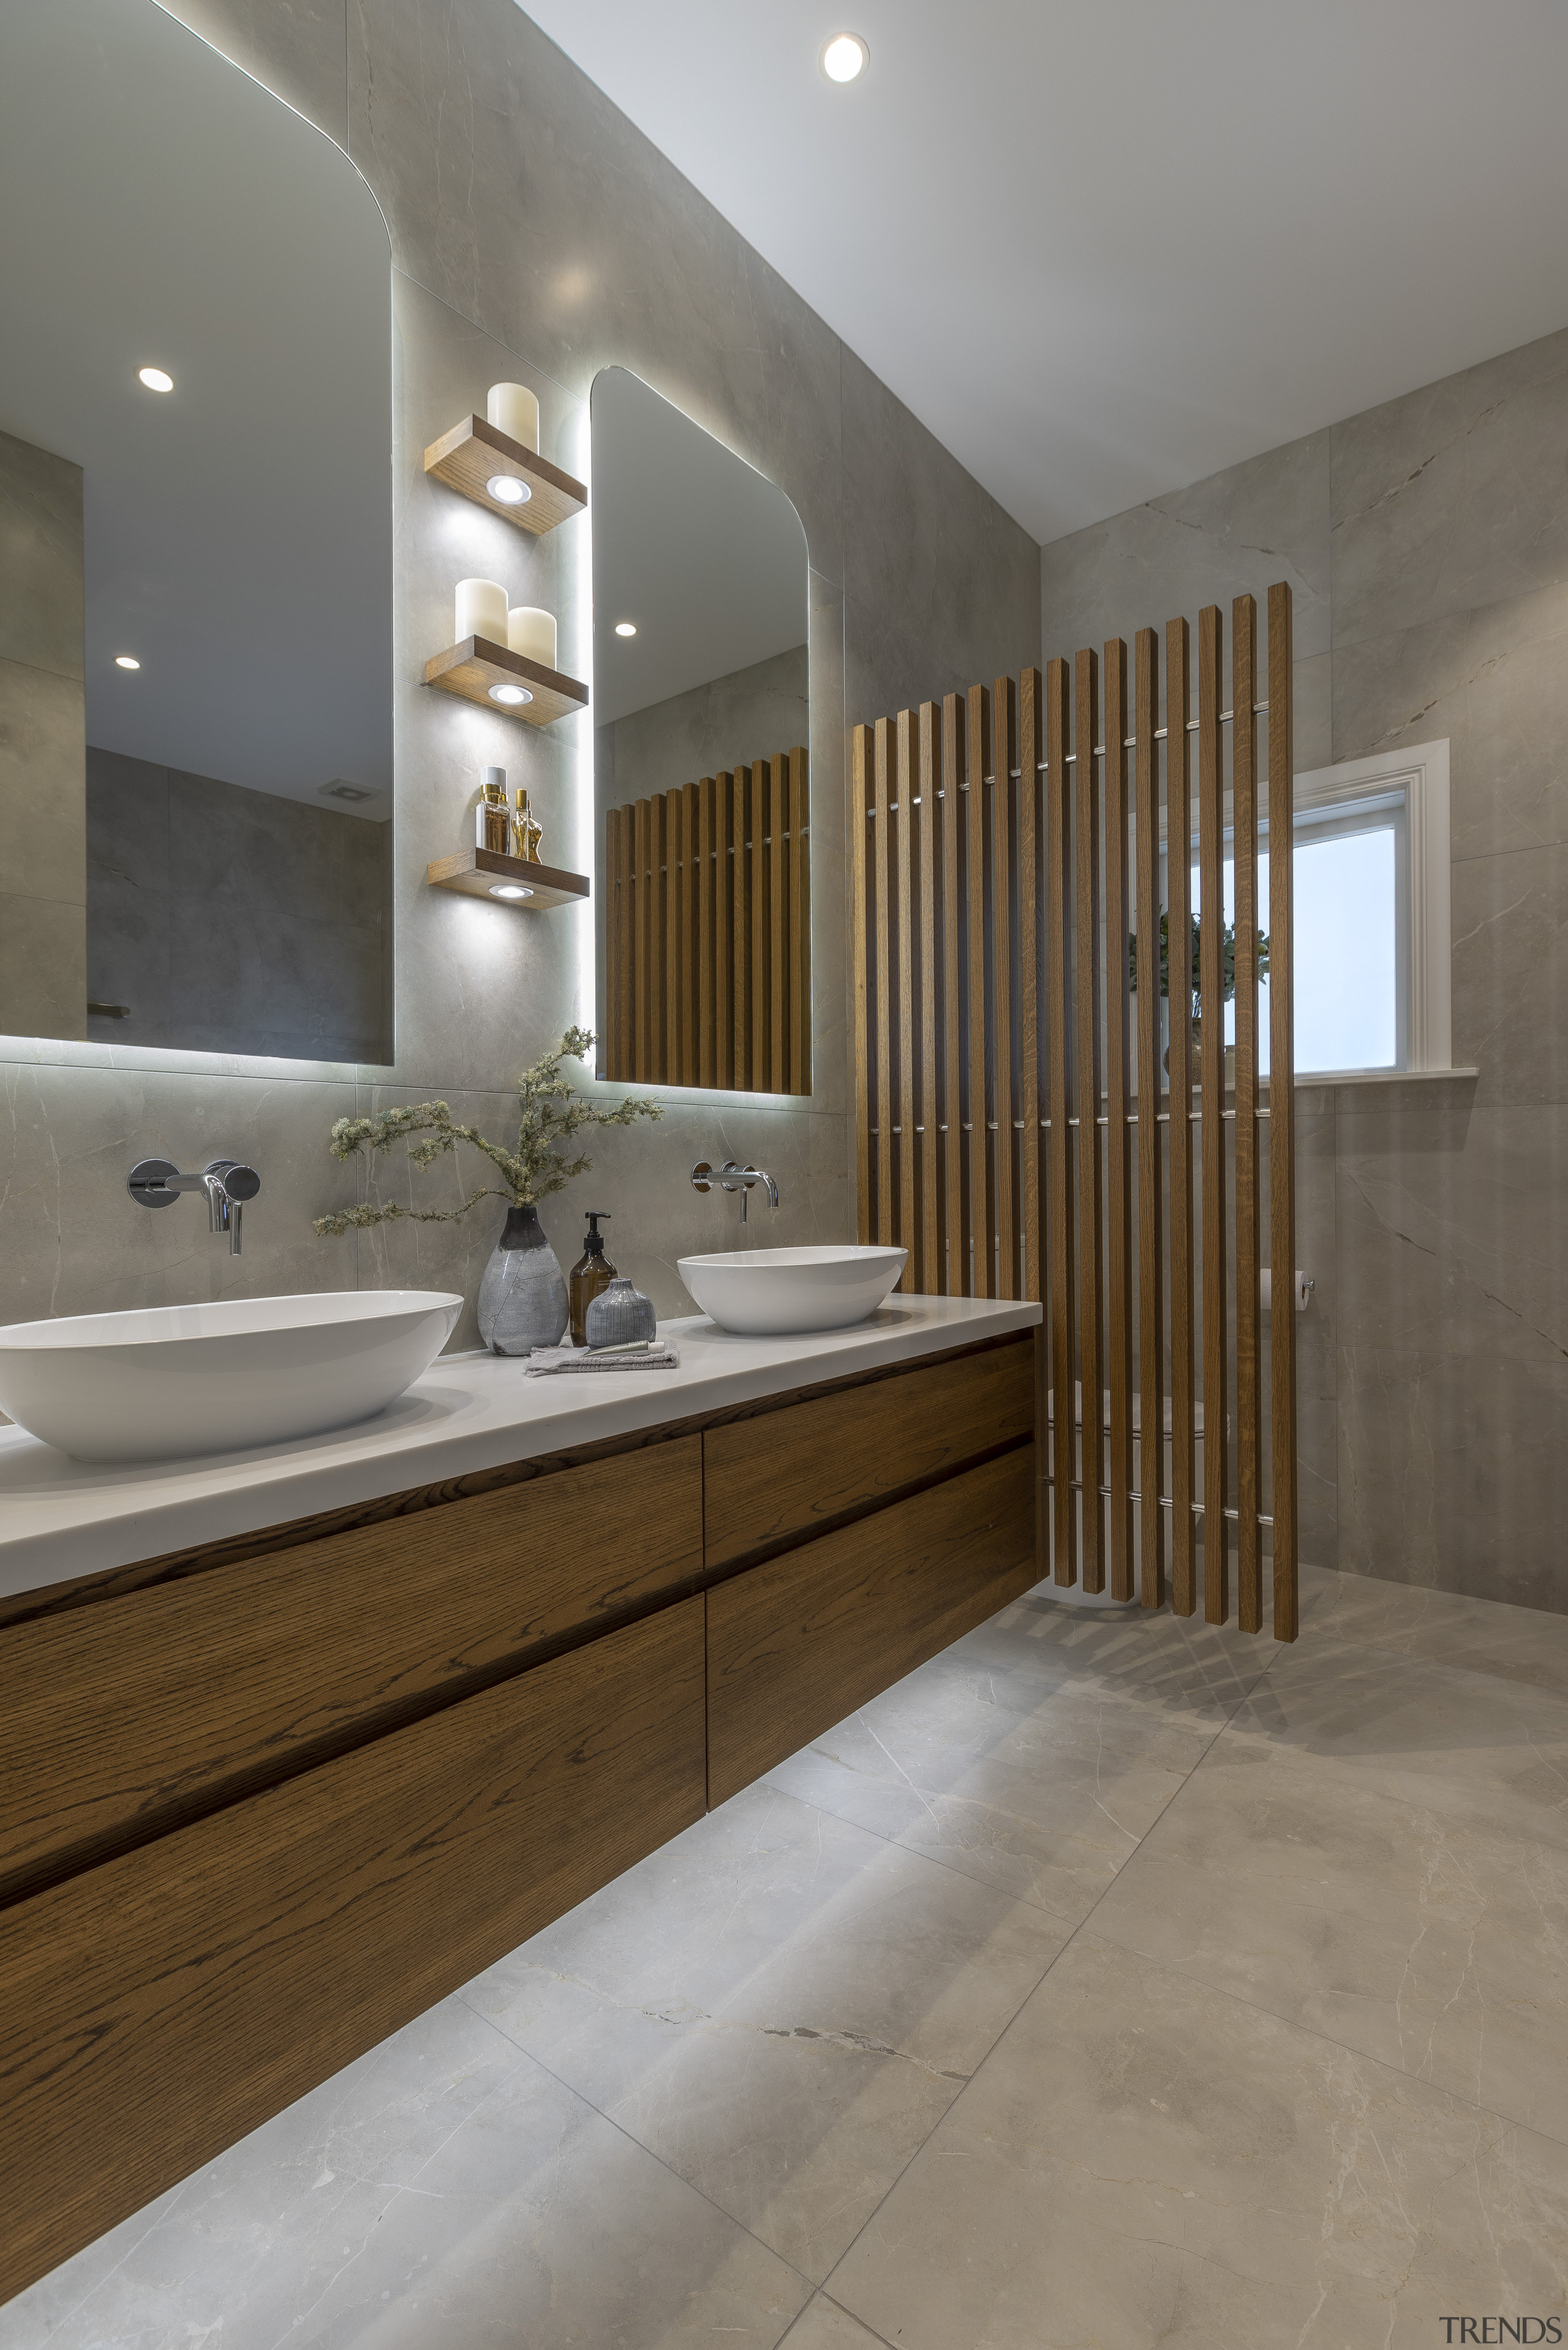 Two mirrors, two basins, and two sets of architecture, bathroom, bathroom accessory, bathroom cabinet, bathtub, beige, building, ceiling, floor, flooring, furniture, home, house, interior design, limestone, marble, material property, plumbing fixture, property, real estate, room, sink, tap, tile, wall, gray